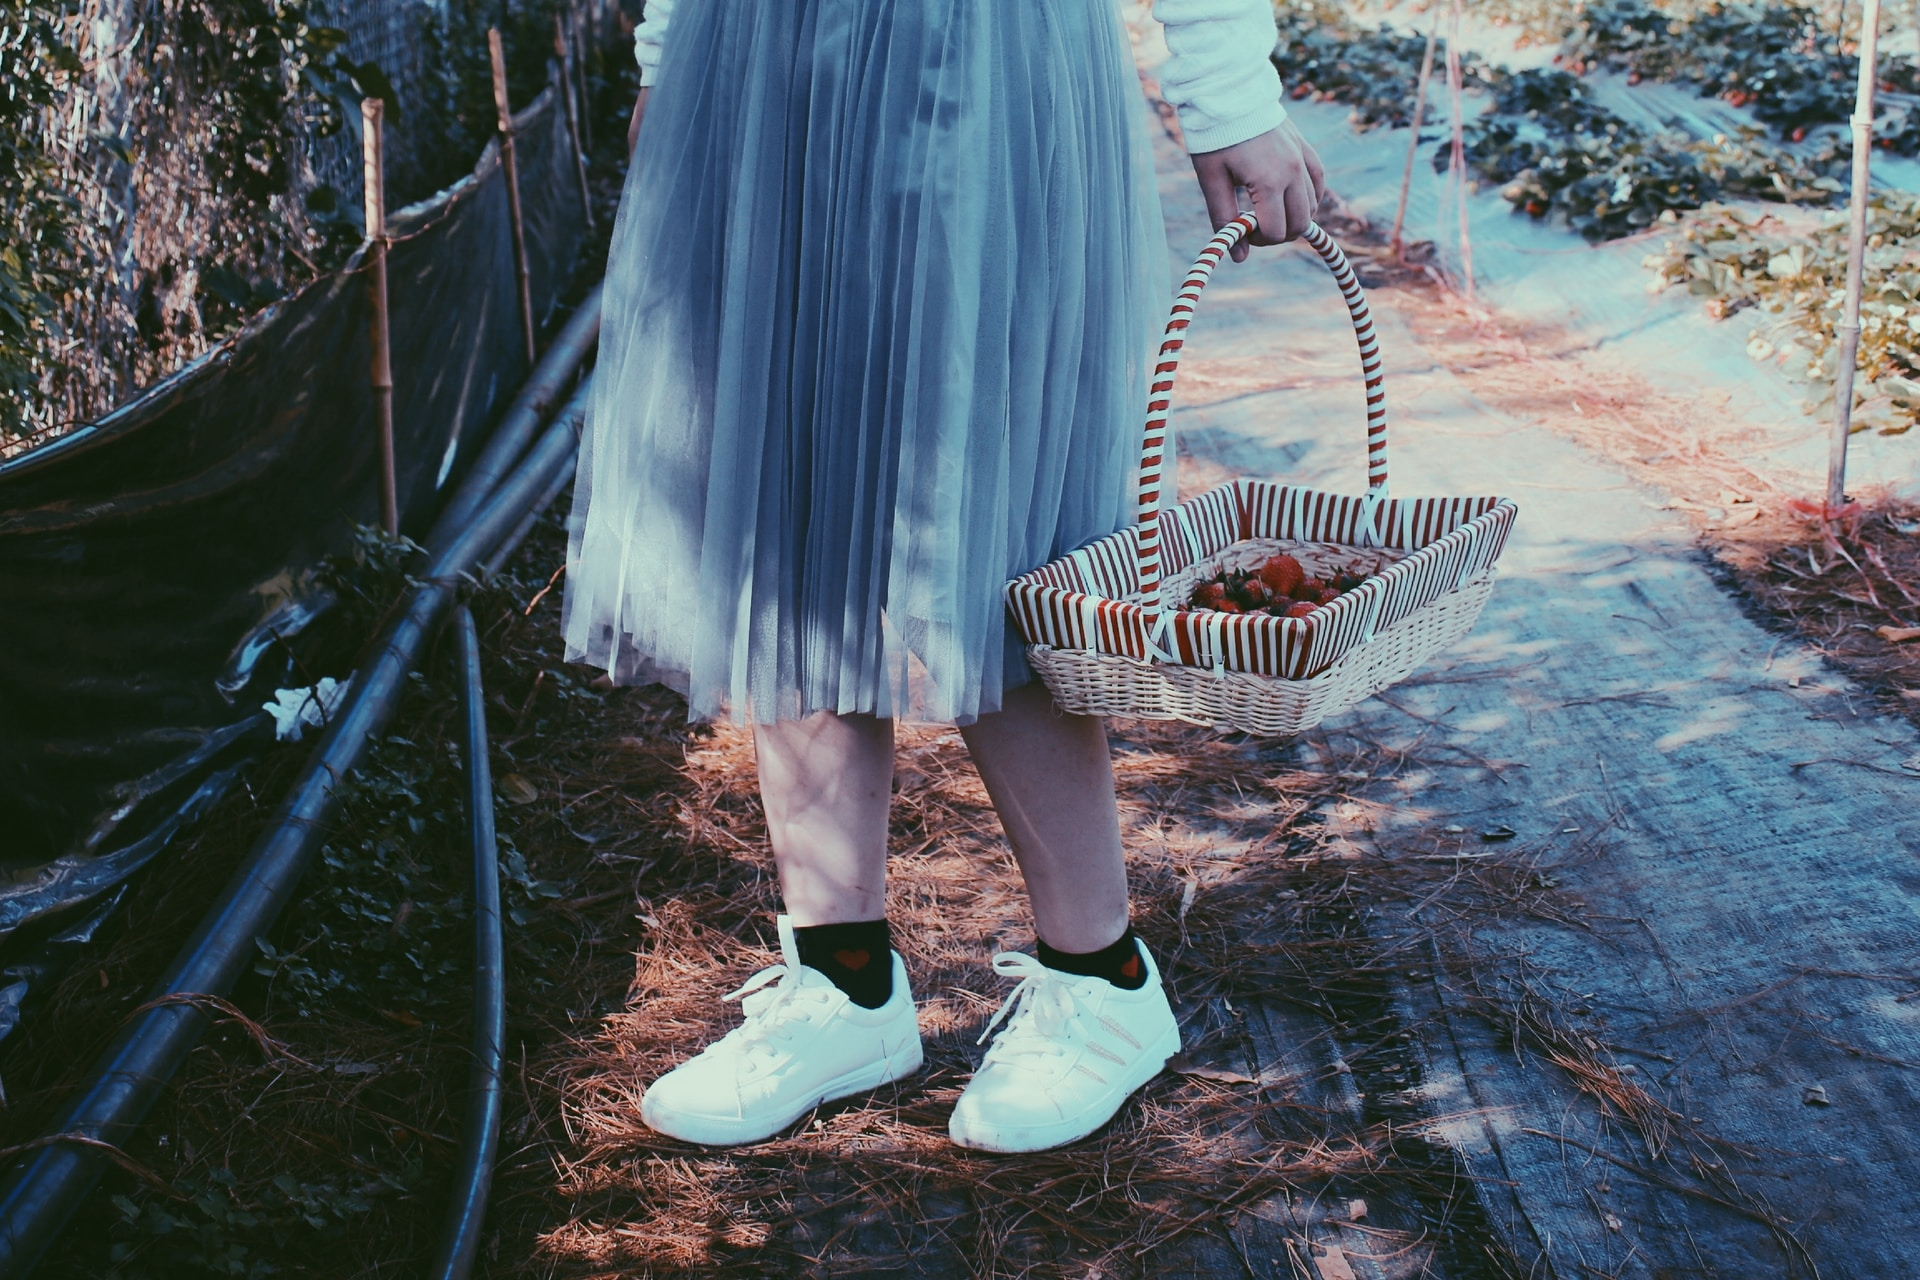 person standing near plant holding basket